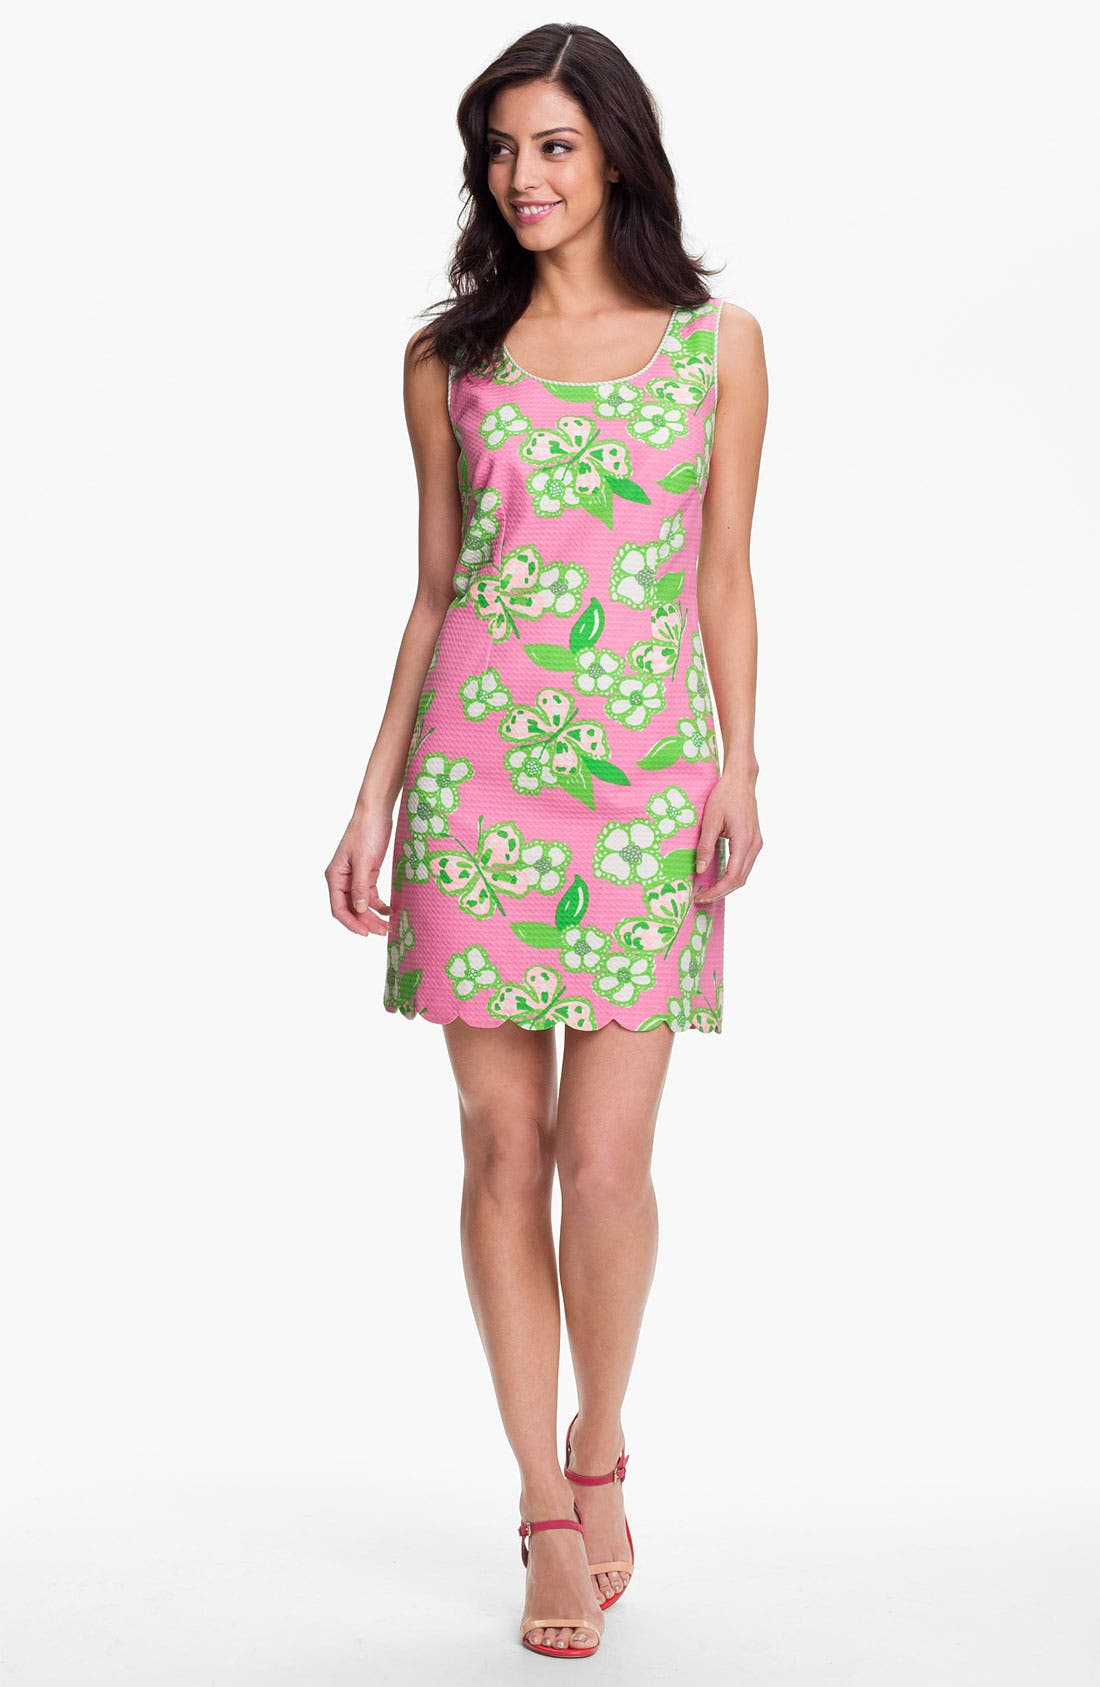 Alternate Image 1 Selected - Lilly Pulitzer® 'Nina' Print Jacquard Cotton Dress